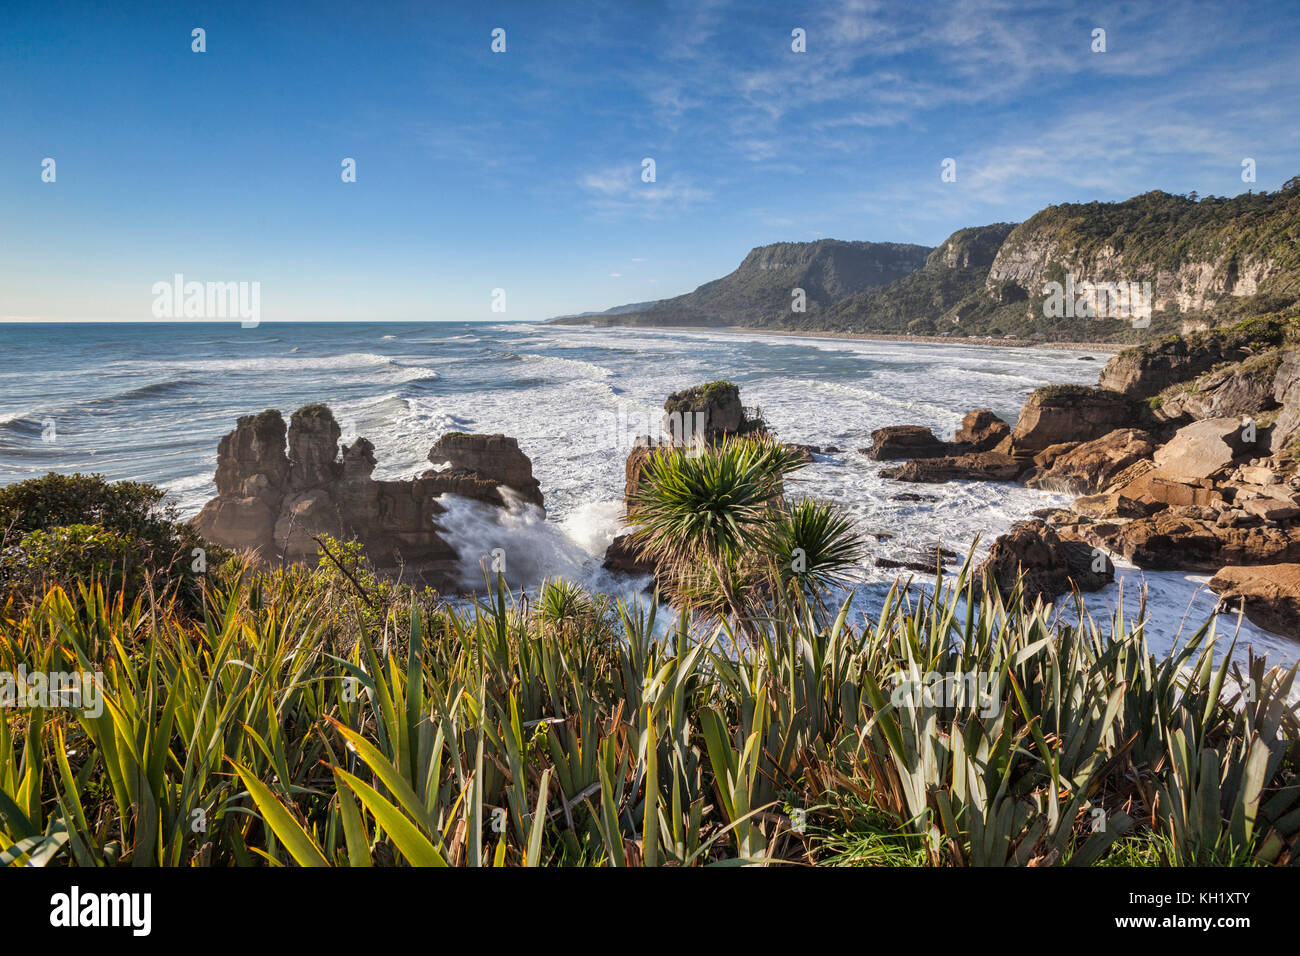 The incoming tide pounding on the rocky shoreline at Punakaiki, in the Paparoa National Park on the West Coast of - Stock Image